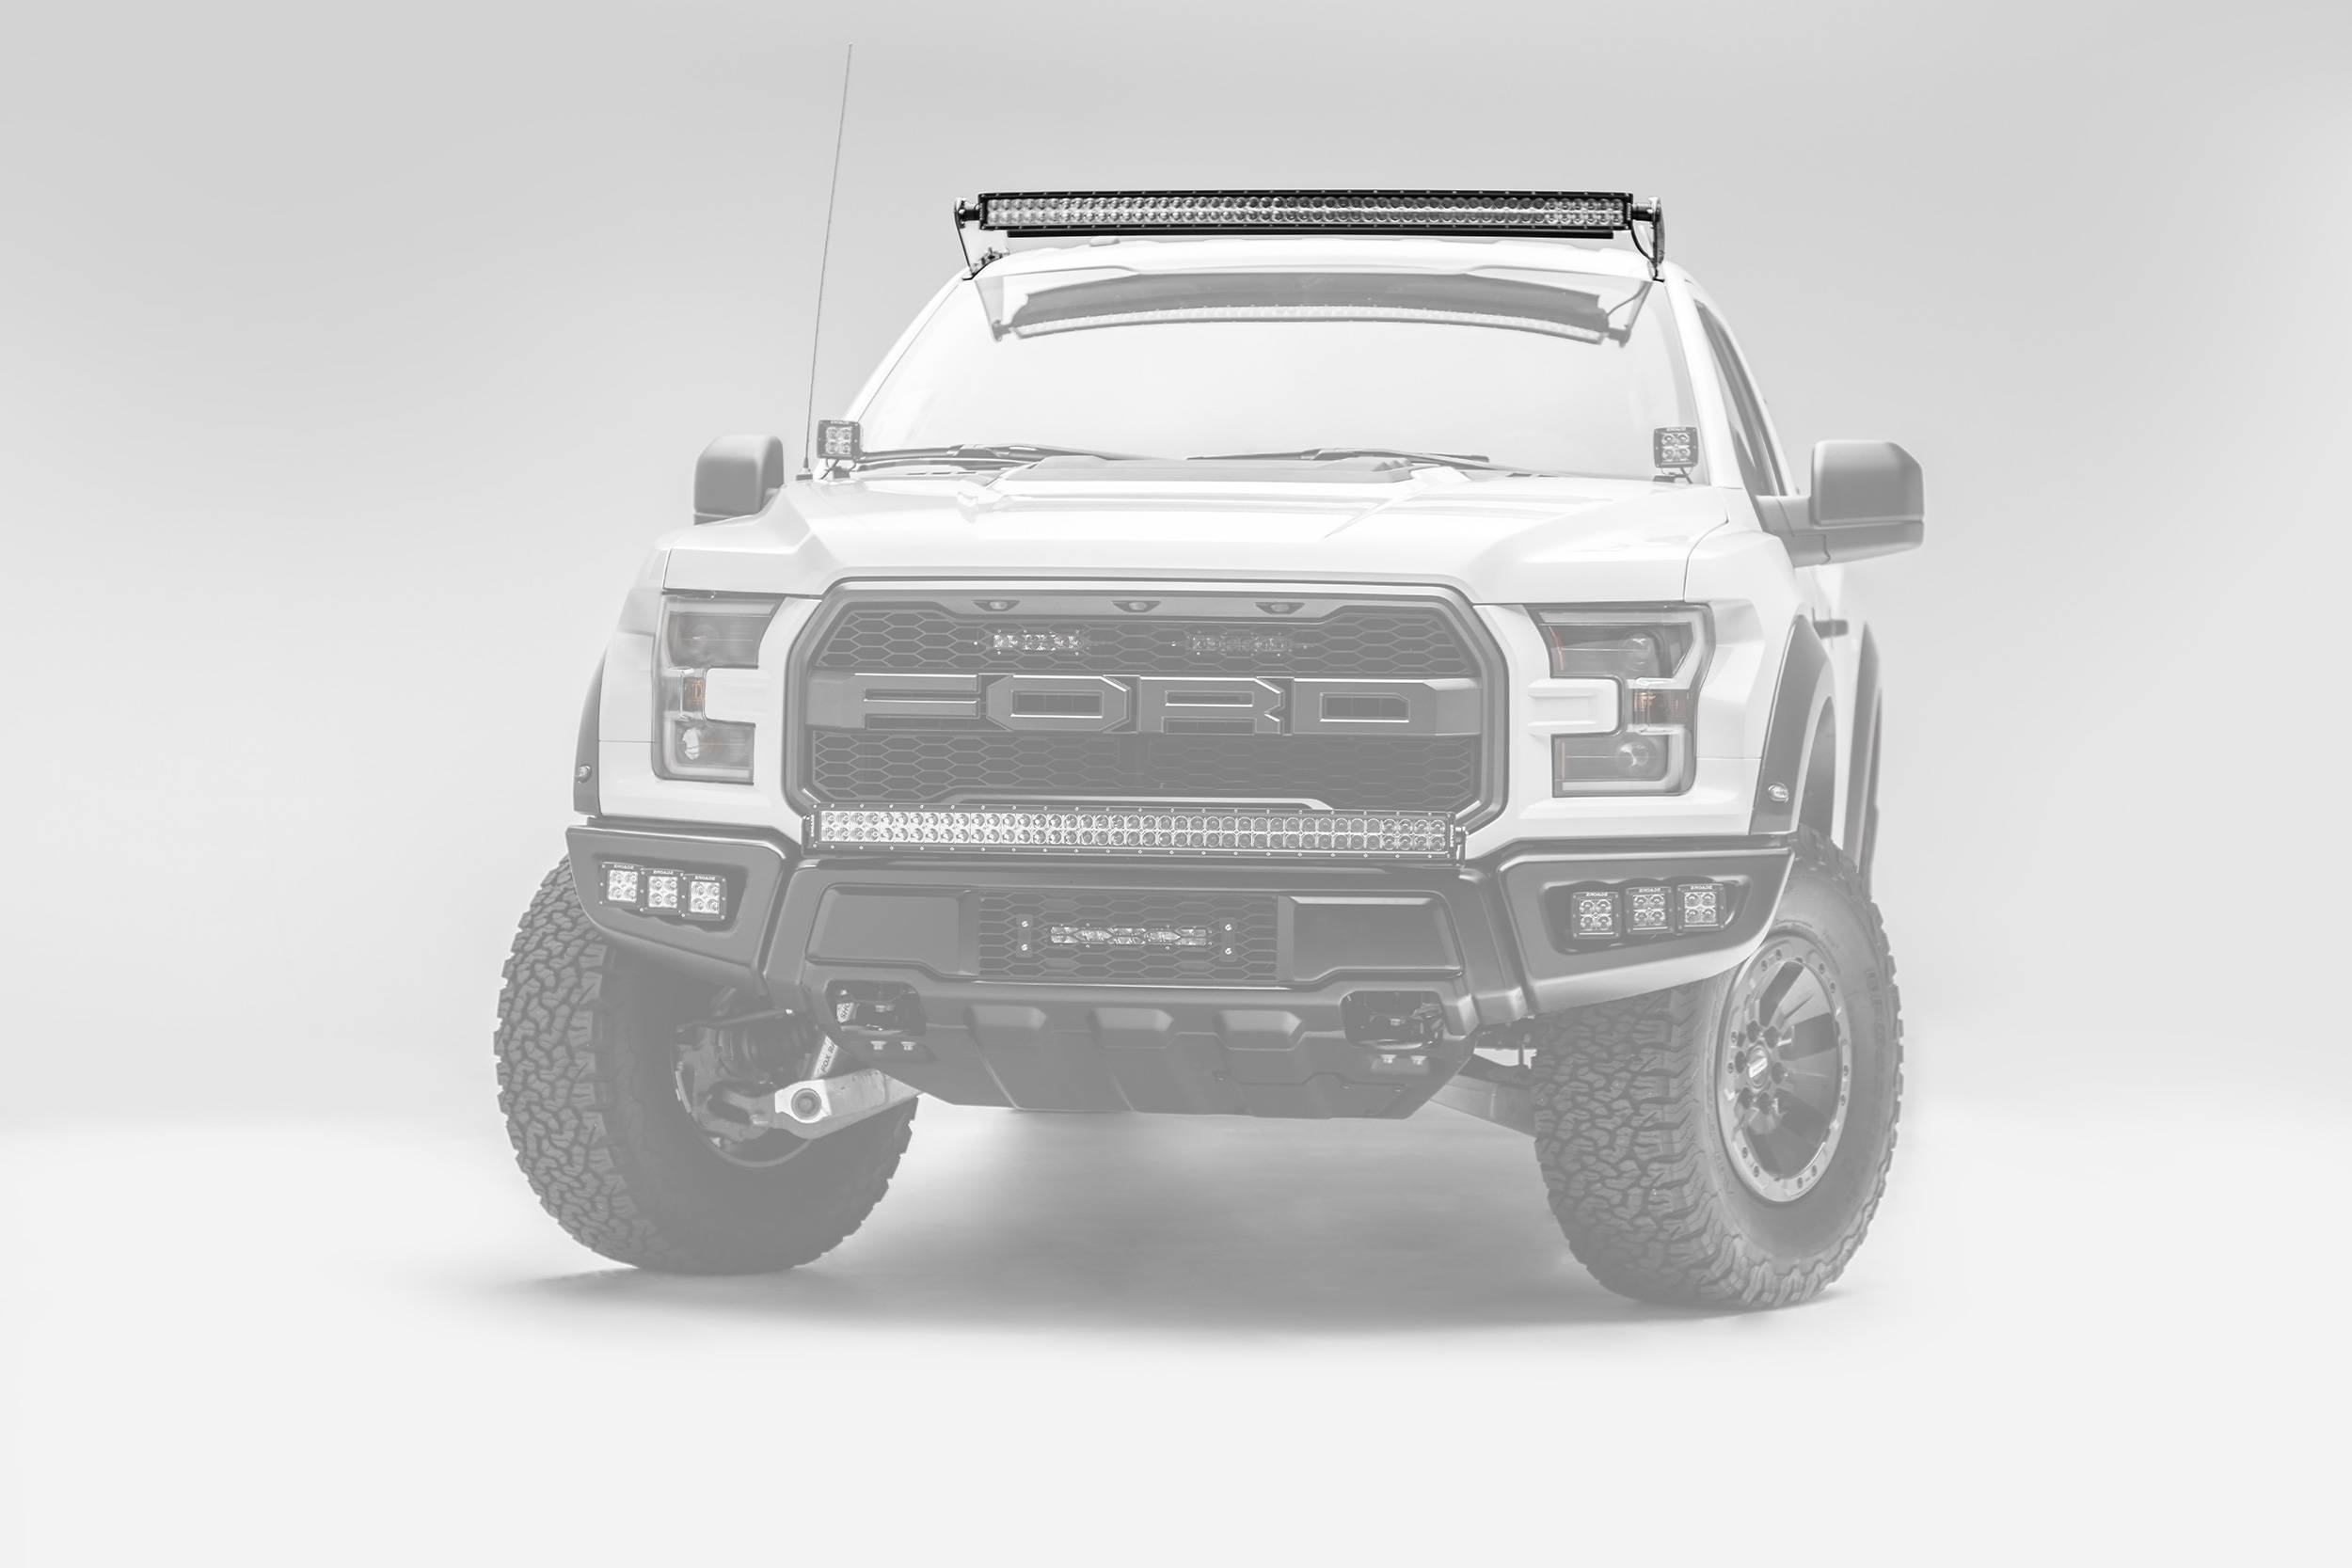 2015-2019 Ford F-150, Raptor Front Roof LED Kit, Incl. (1) 52 Inch LED Curved Double Row Light Bar - PN #Z335662-KIT-C